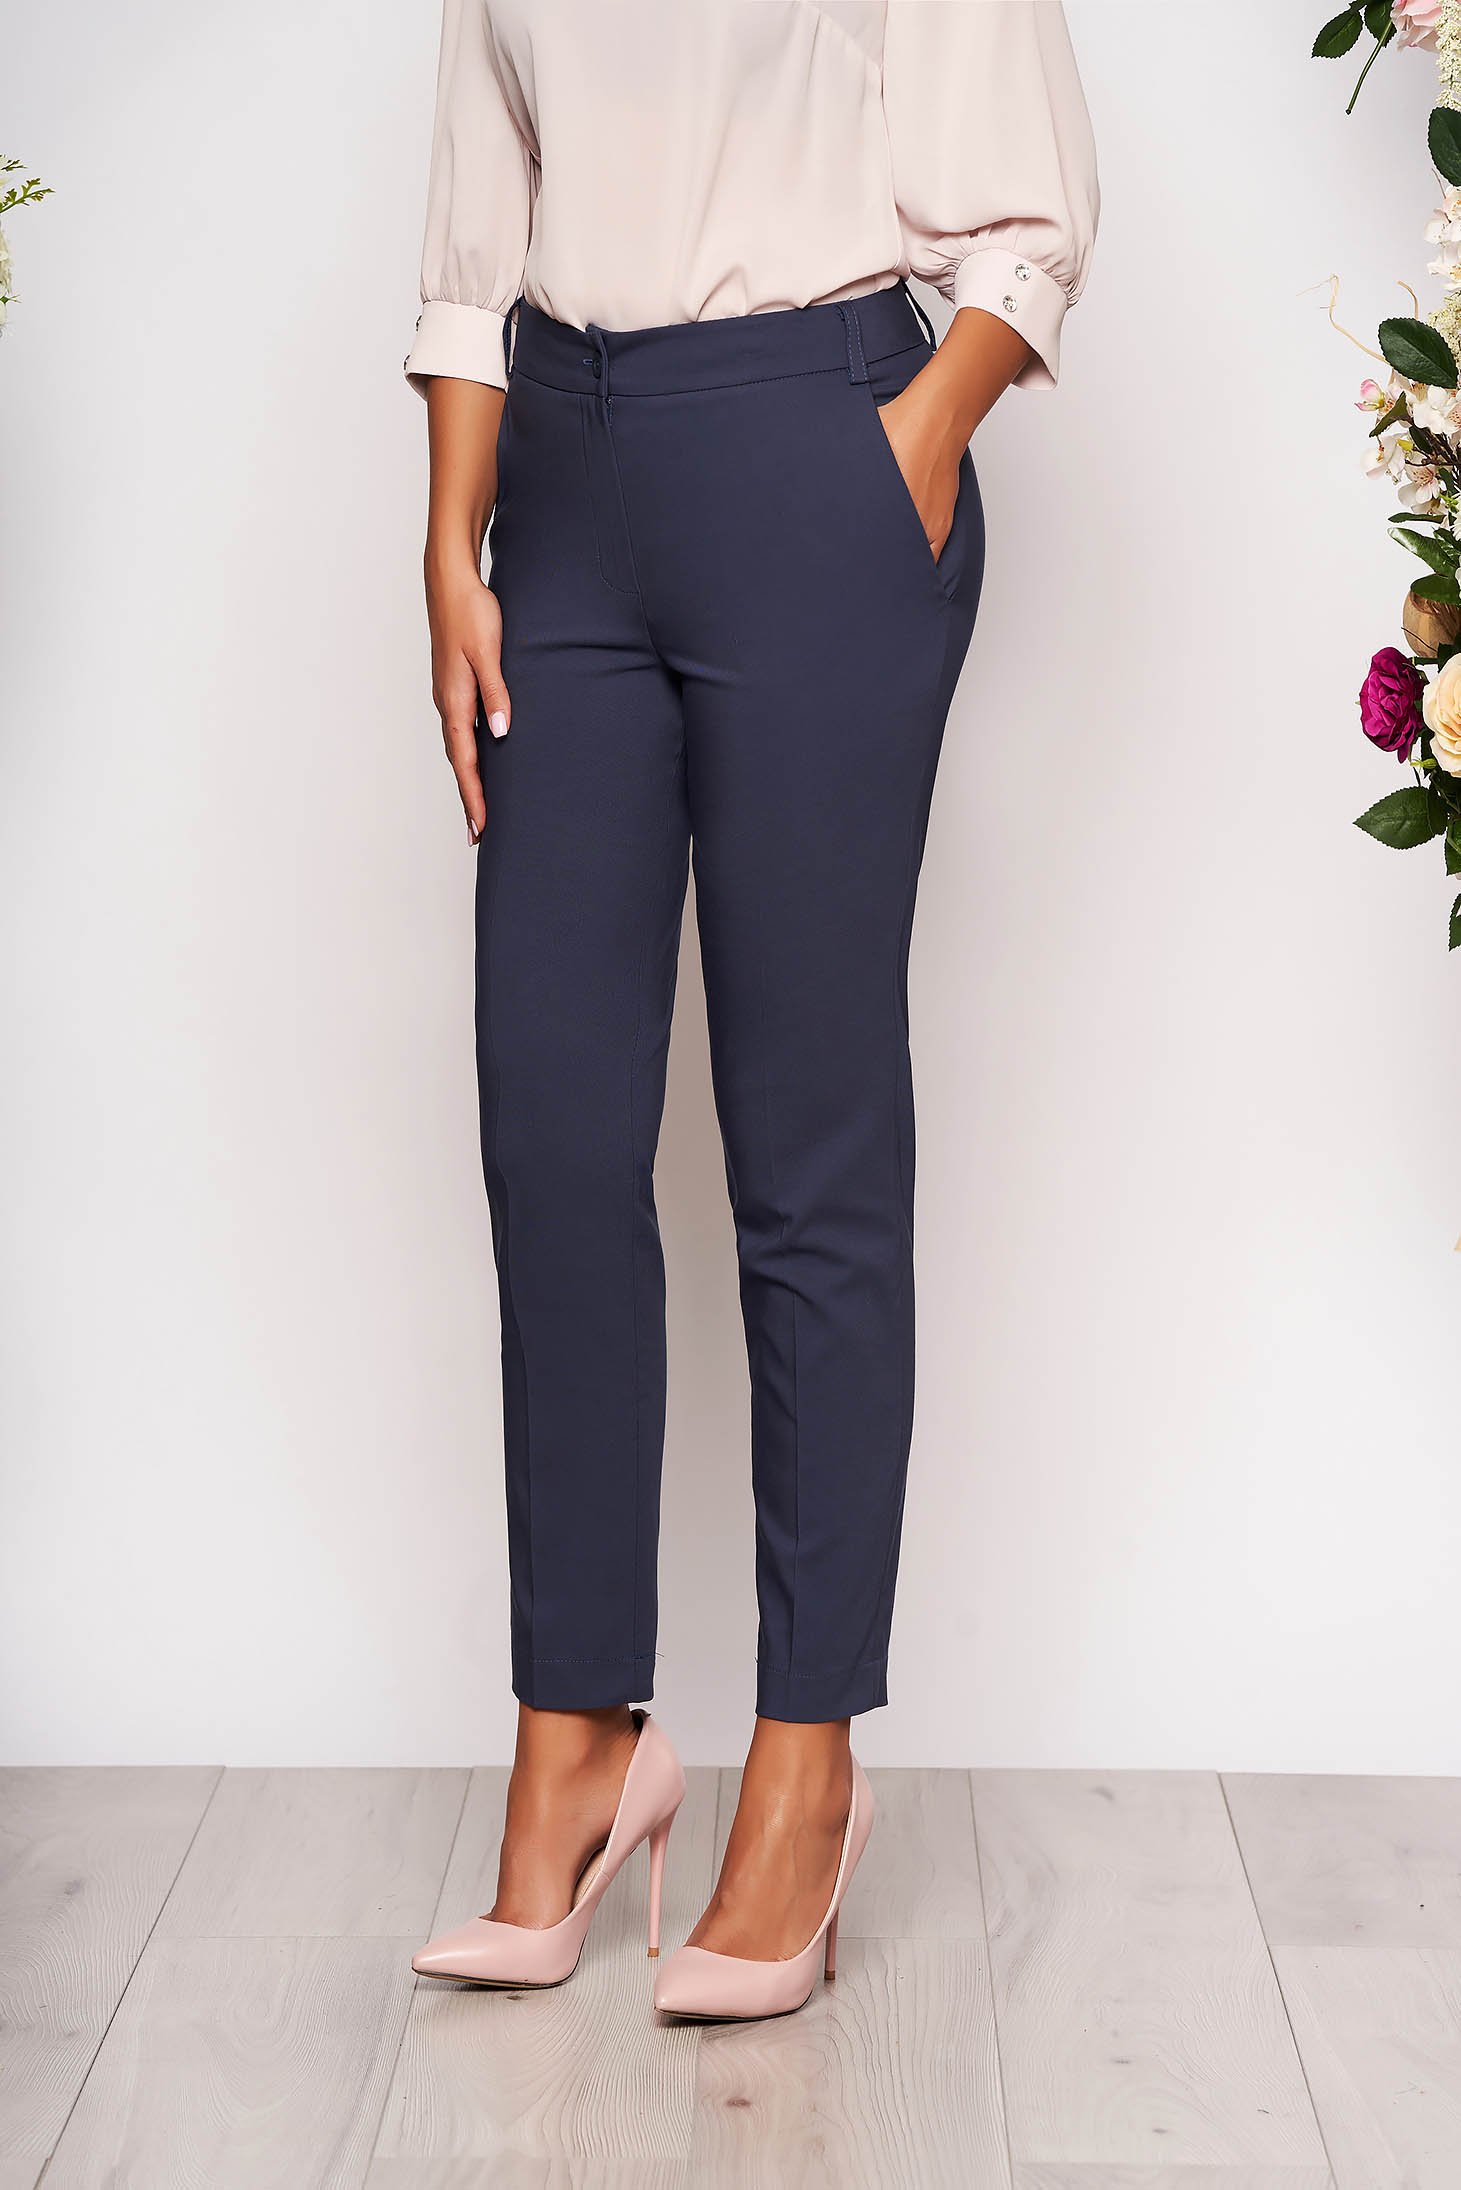 Darkblue trousers elegant conical long medium waist cloth with pockets